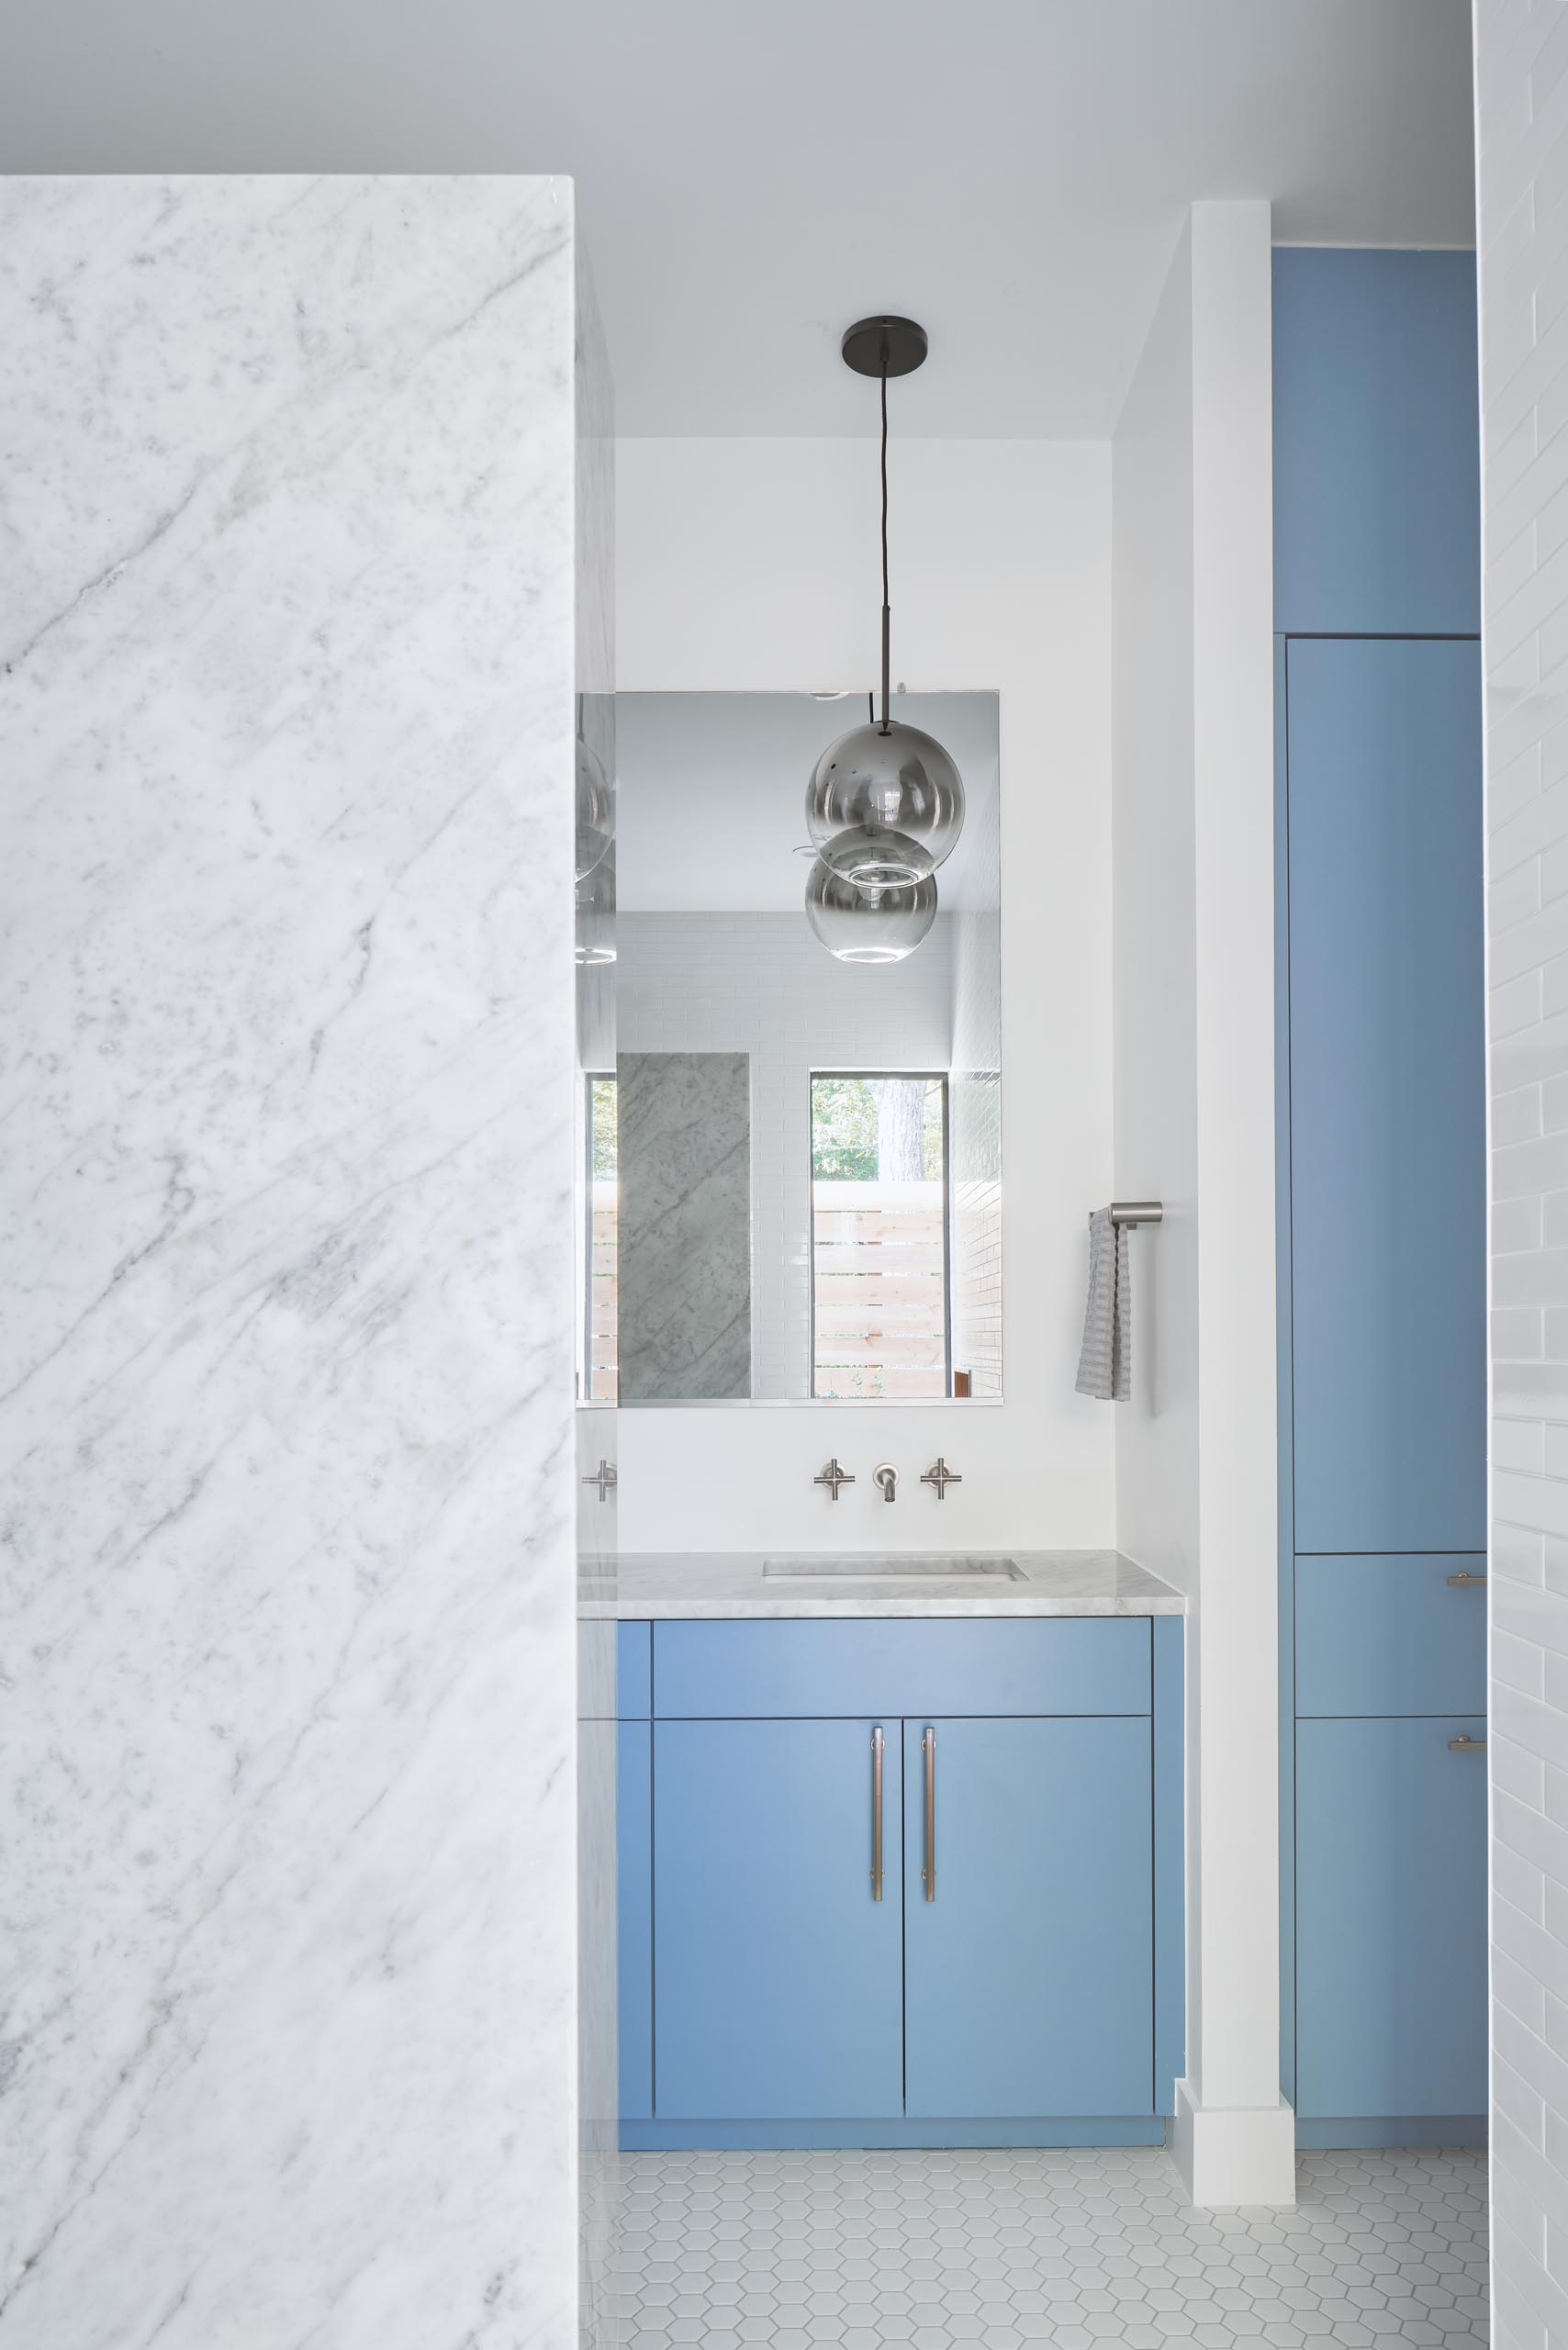 A modern bathroom with a light blue vanity and cabinets, and a marble countertop.